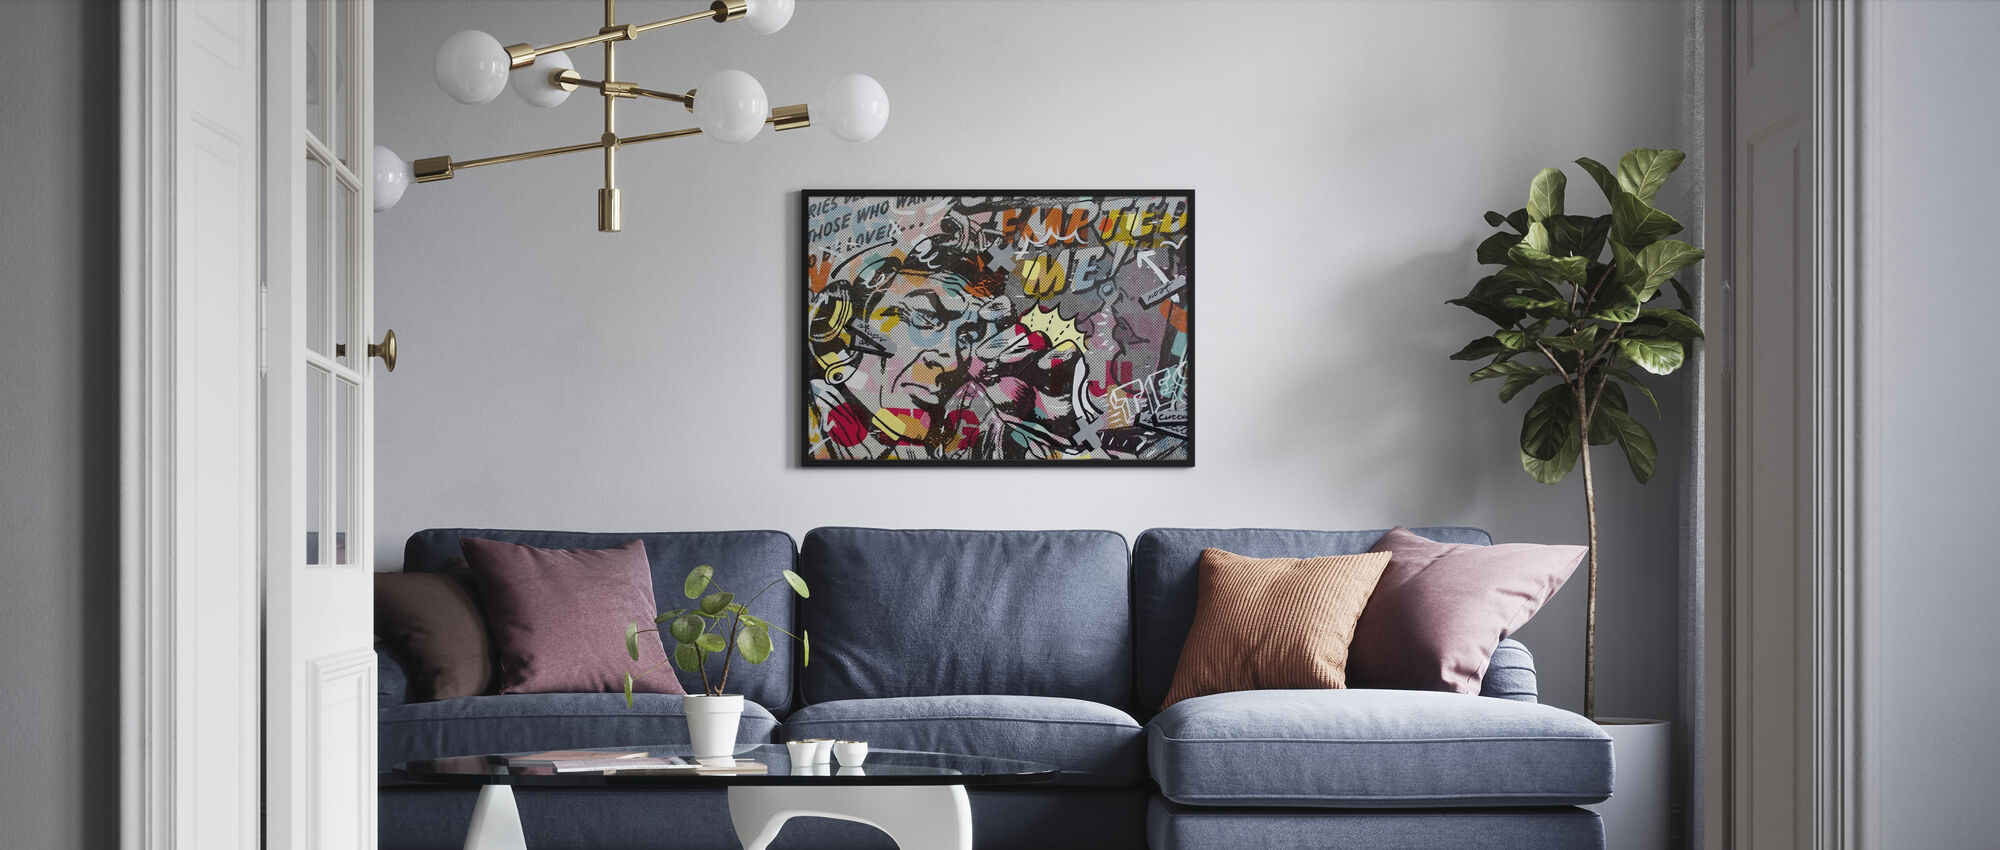 Mimosas - Poster - Living Room